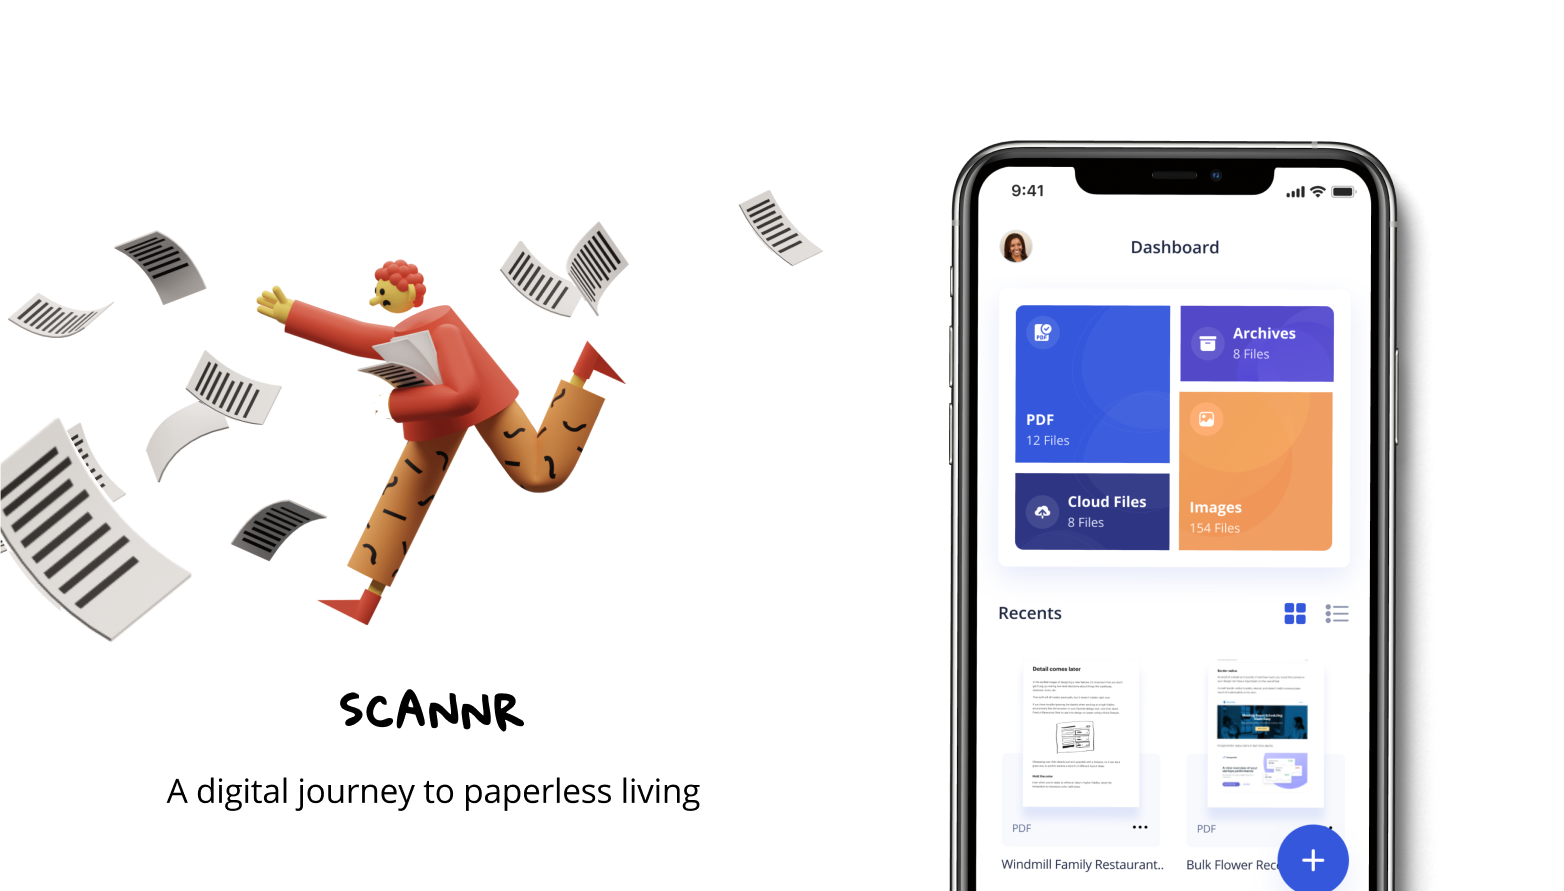 A background picture depicting a man chasing after papers and Scannr standing side by side.